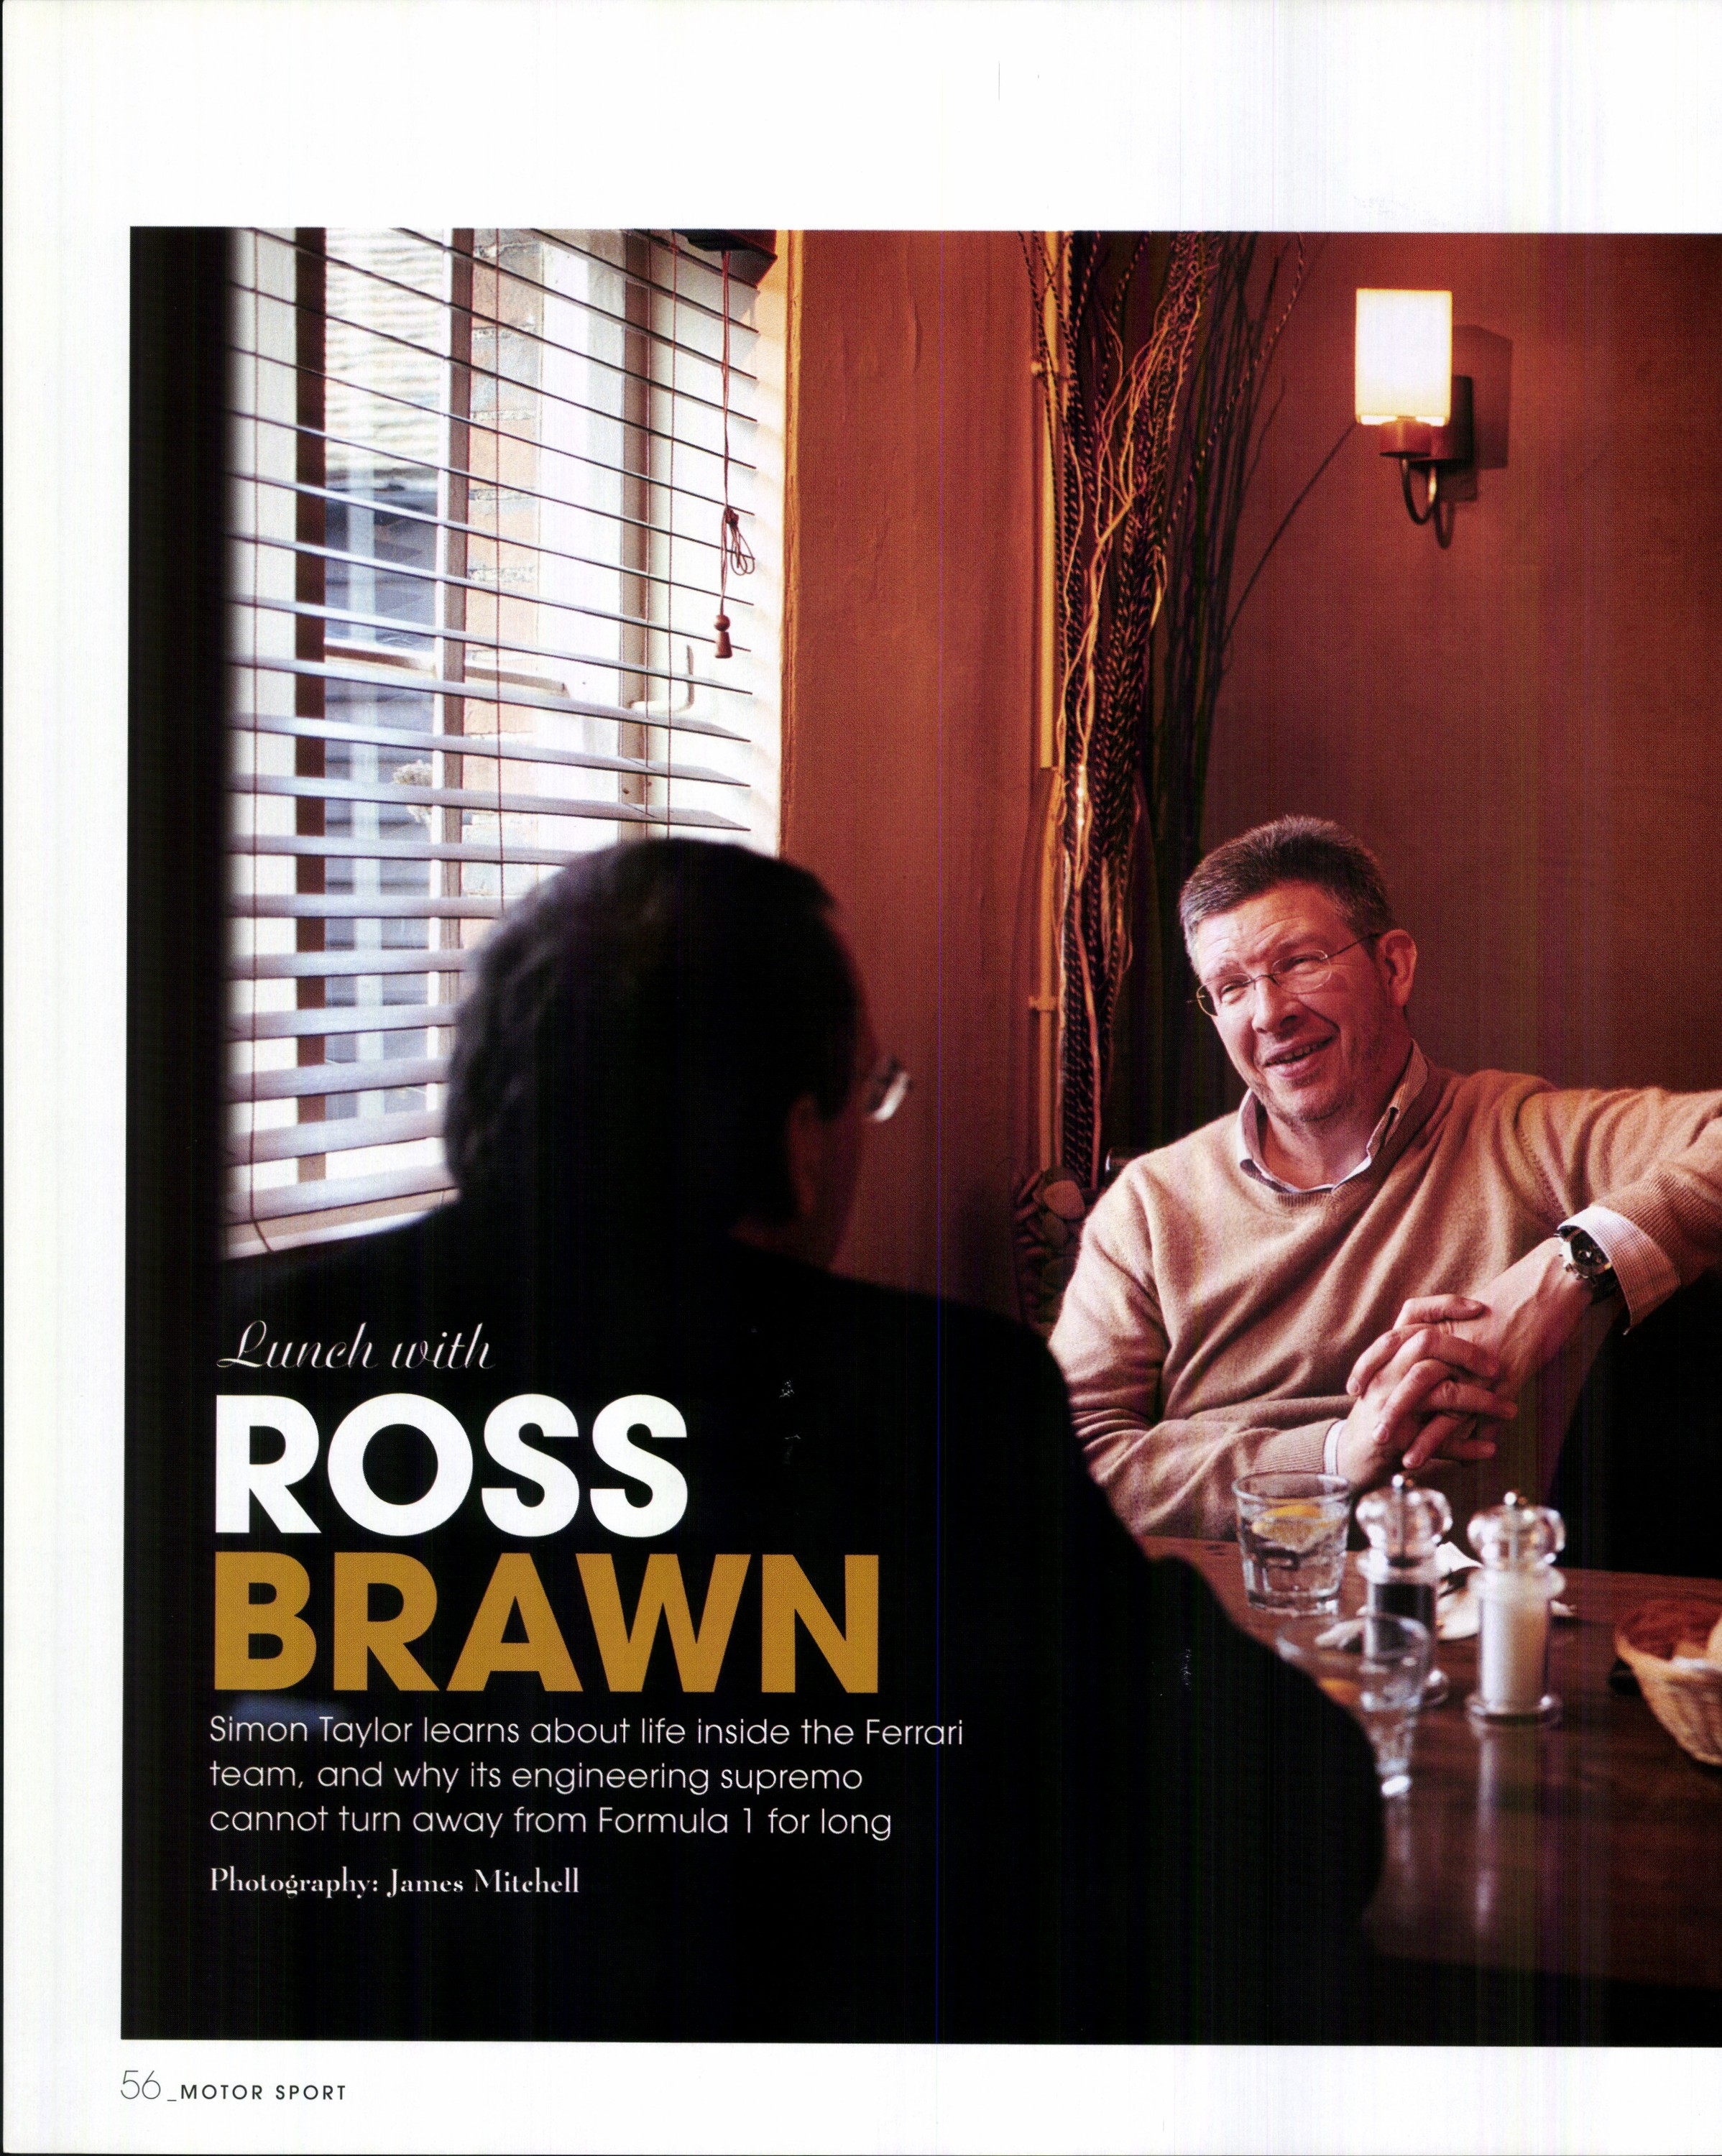 lunch with ross brawn image